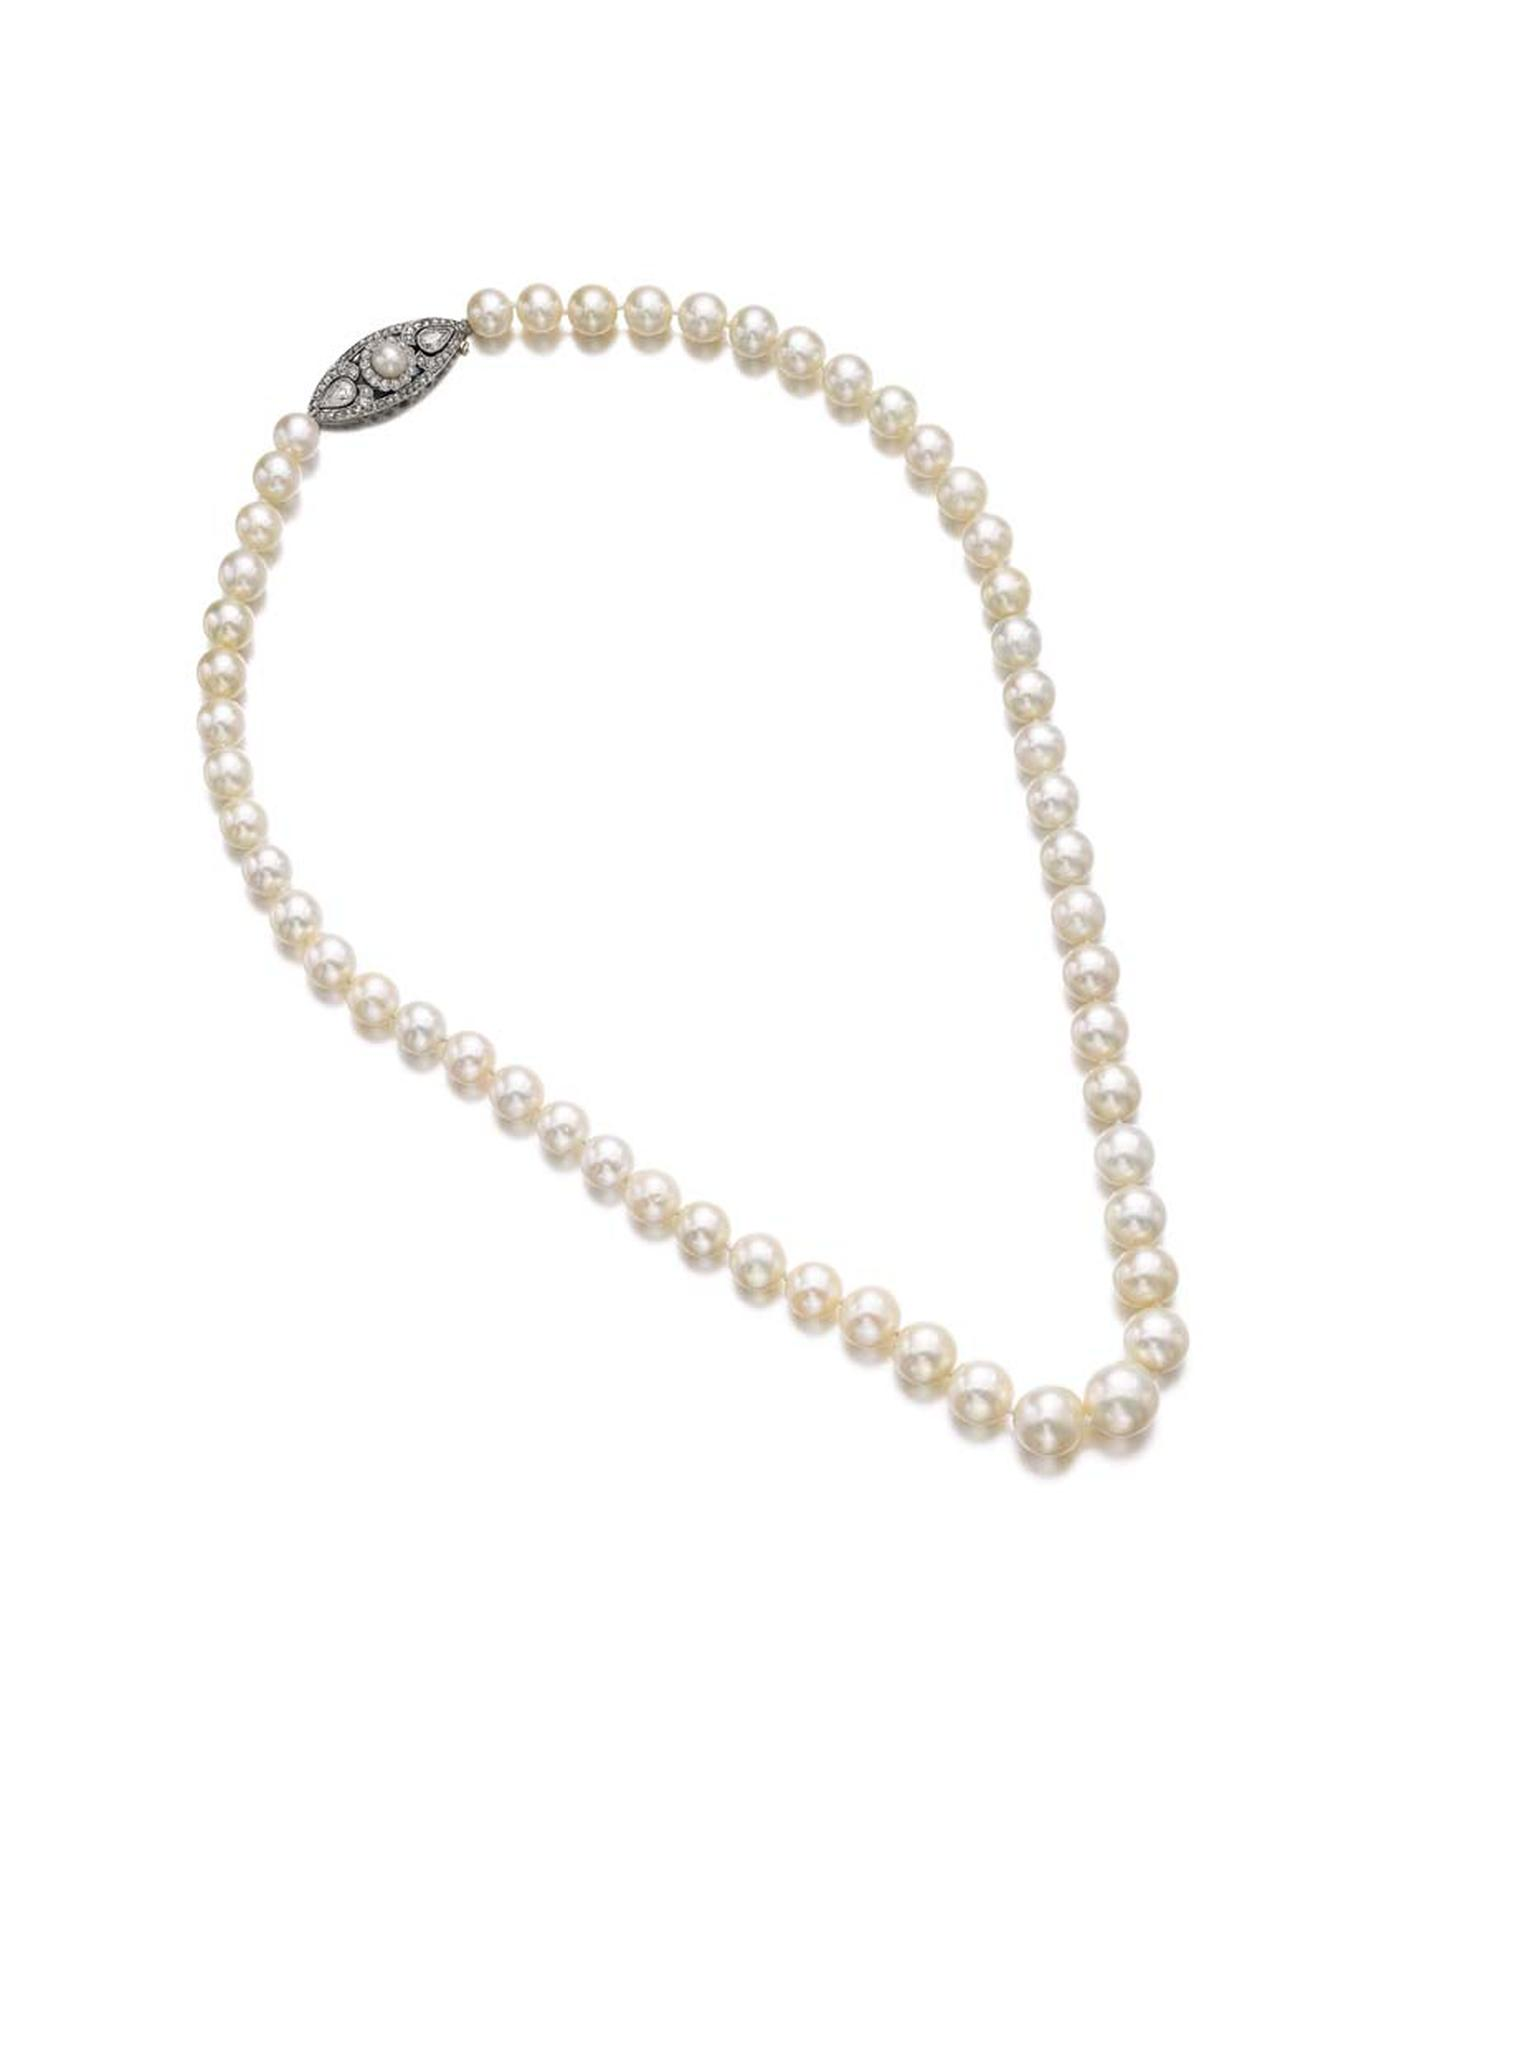 This natural pearl and diamond necklace sold for more than eight times its estimate at Sotheby's Geneva, fetching nearly $3m.